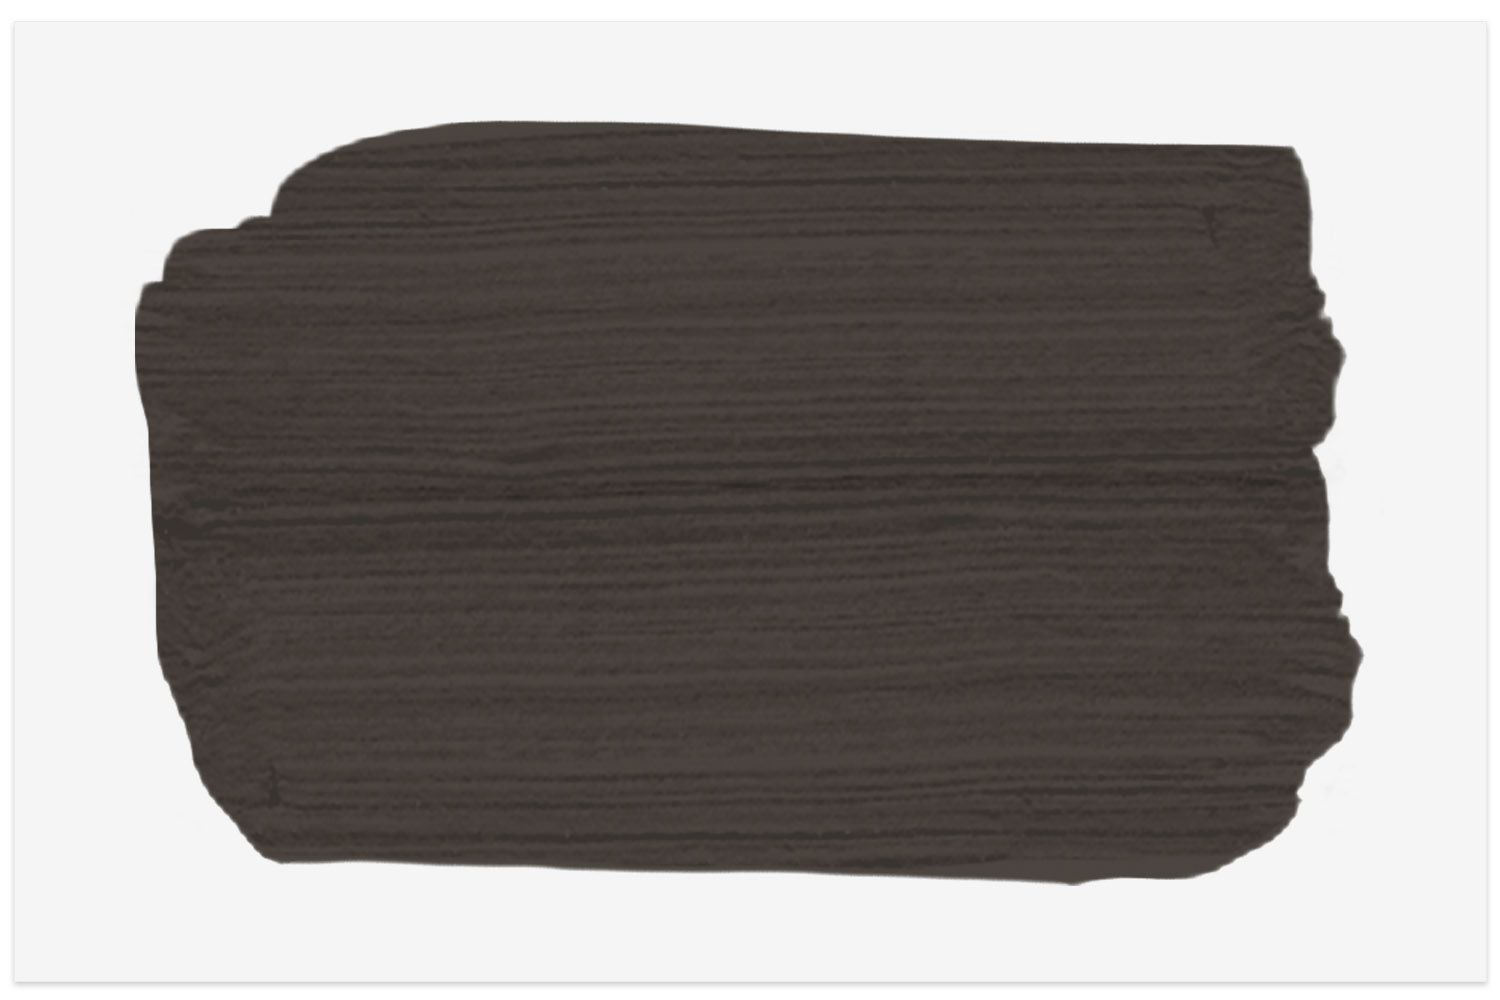 Espresso Beans paint swatch from Behr